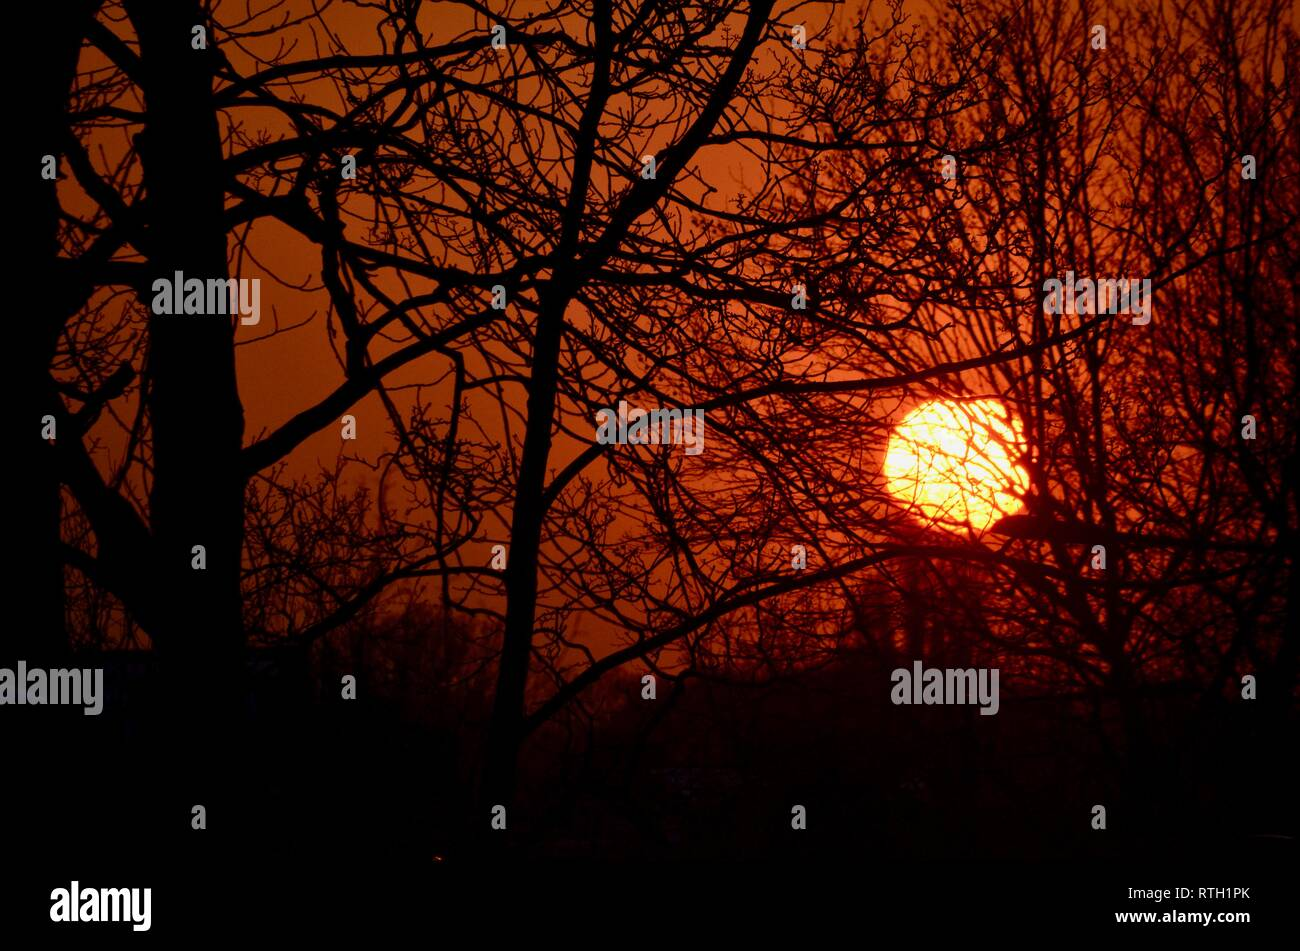 the sun setting through trees with an orange sky in london england UK - Stock Image